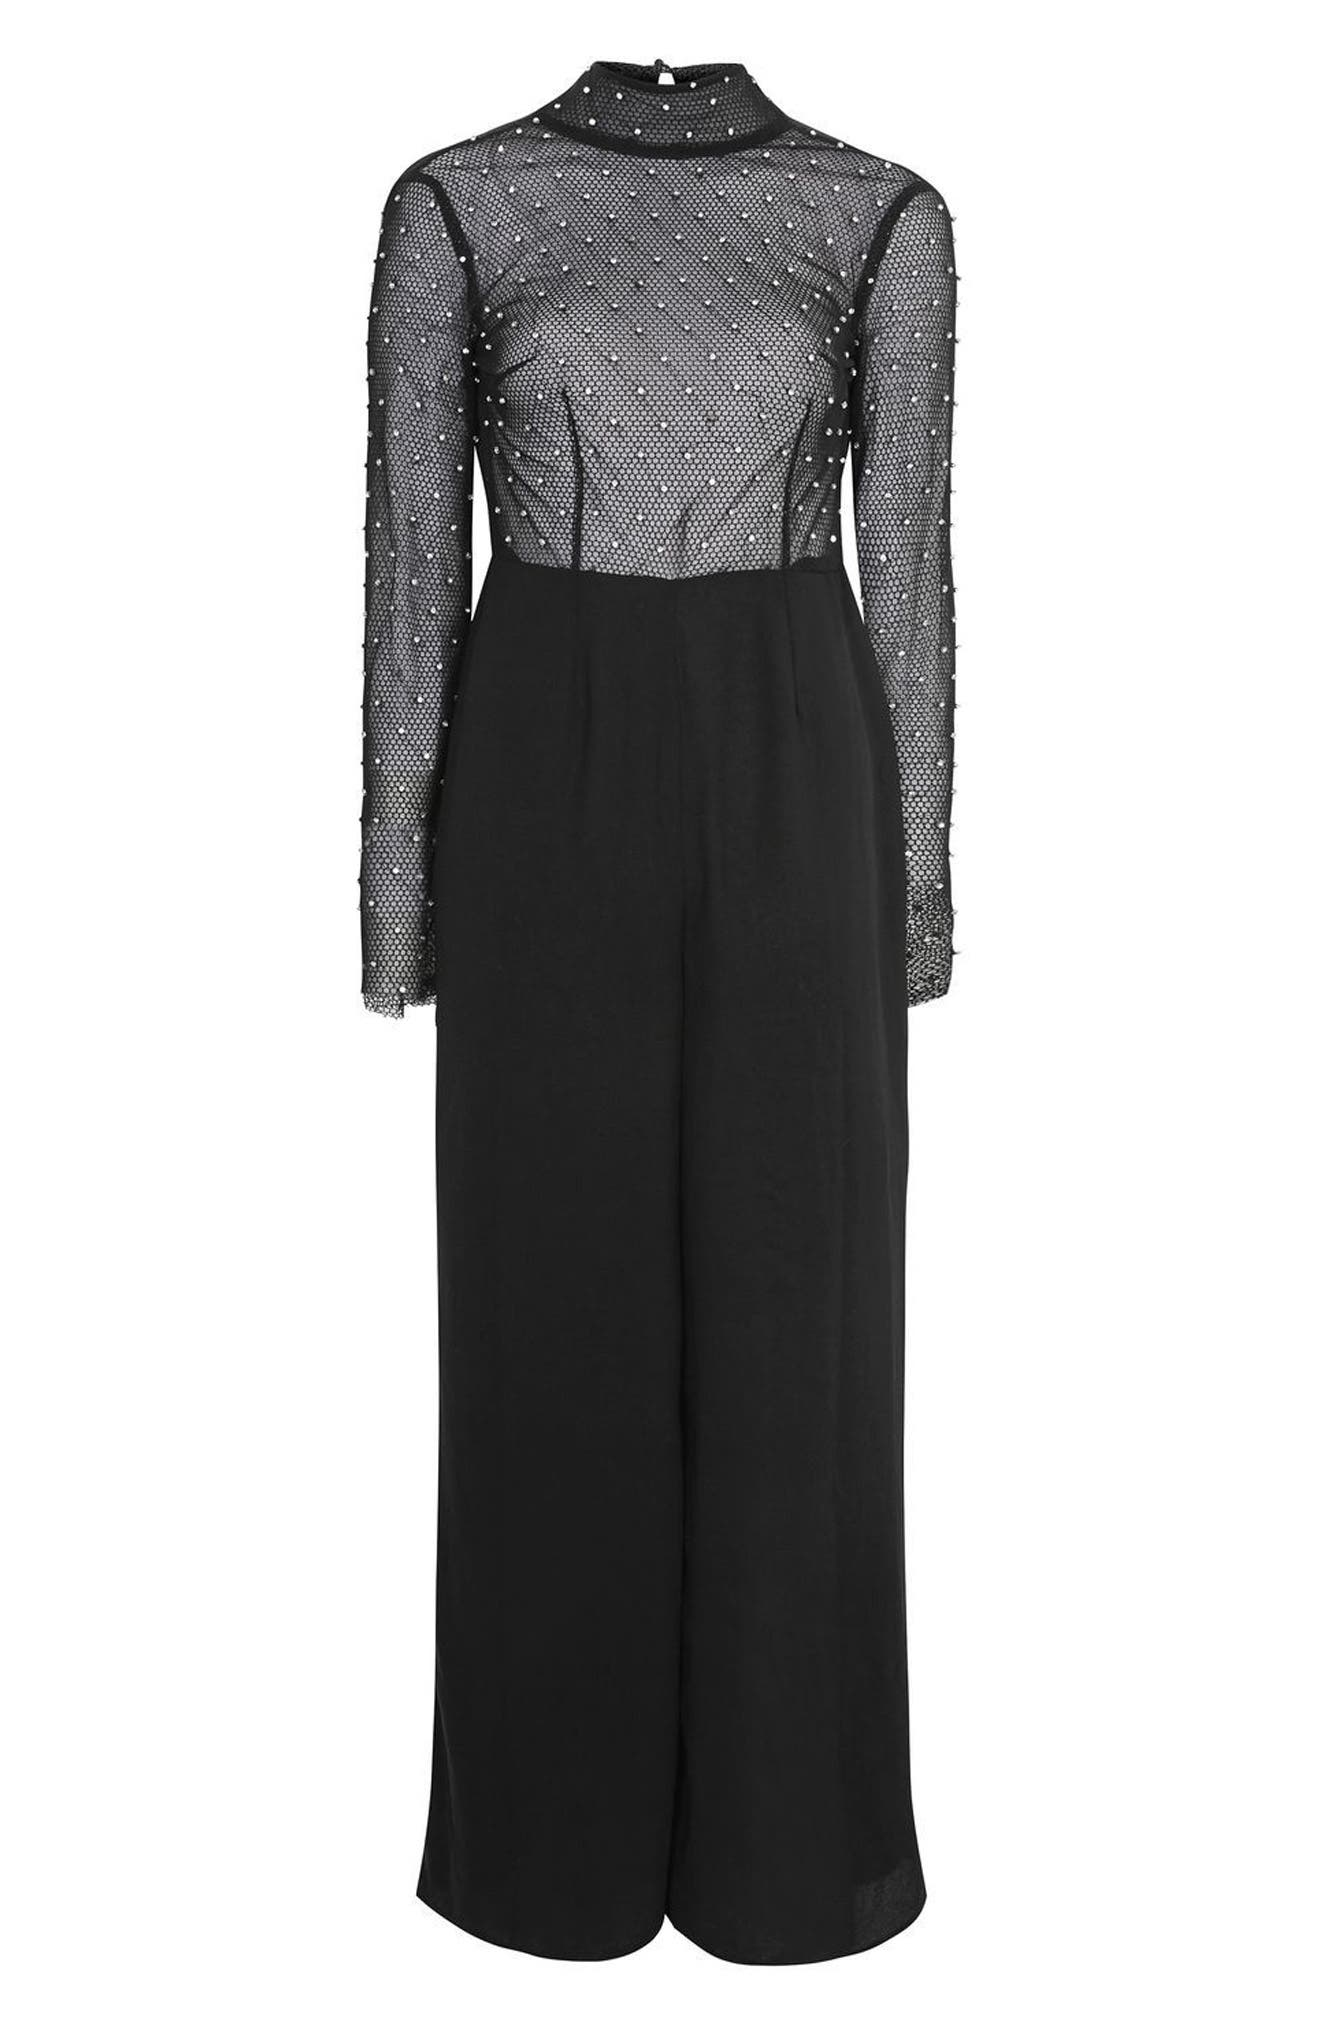 TOPSHOP,                             Diamante Fishnet Jumpsuit,                             Alternate thumbnail 4, color,                             001